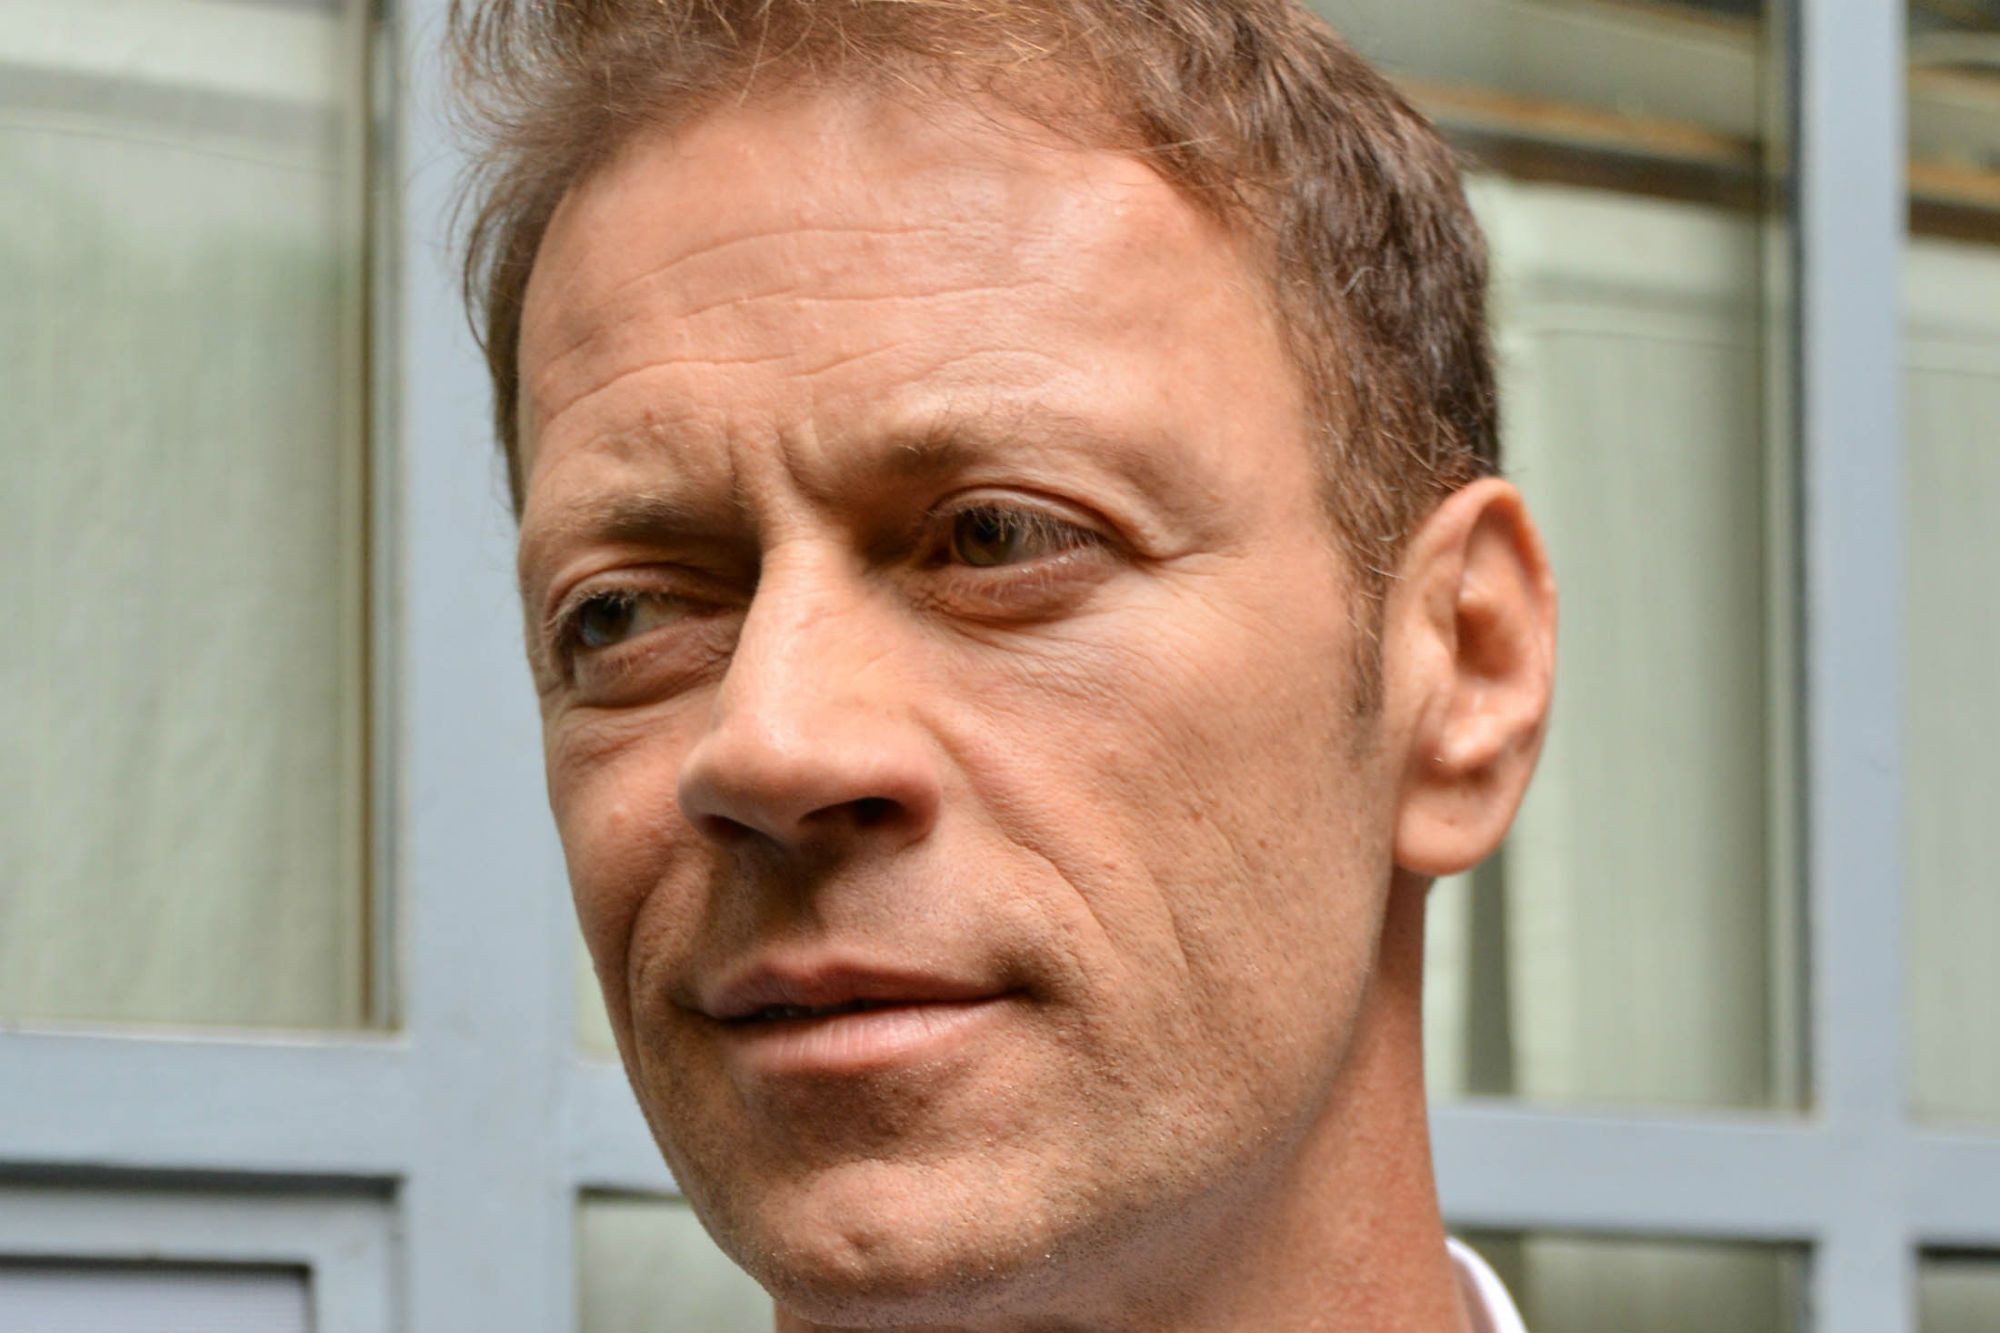 Pin on Rocco Siffredi